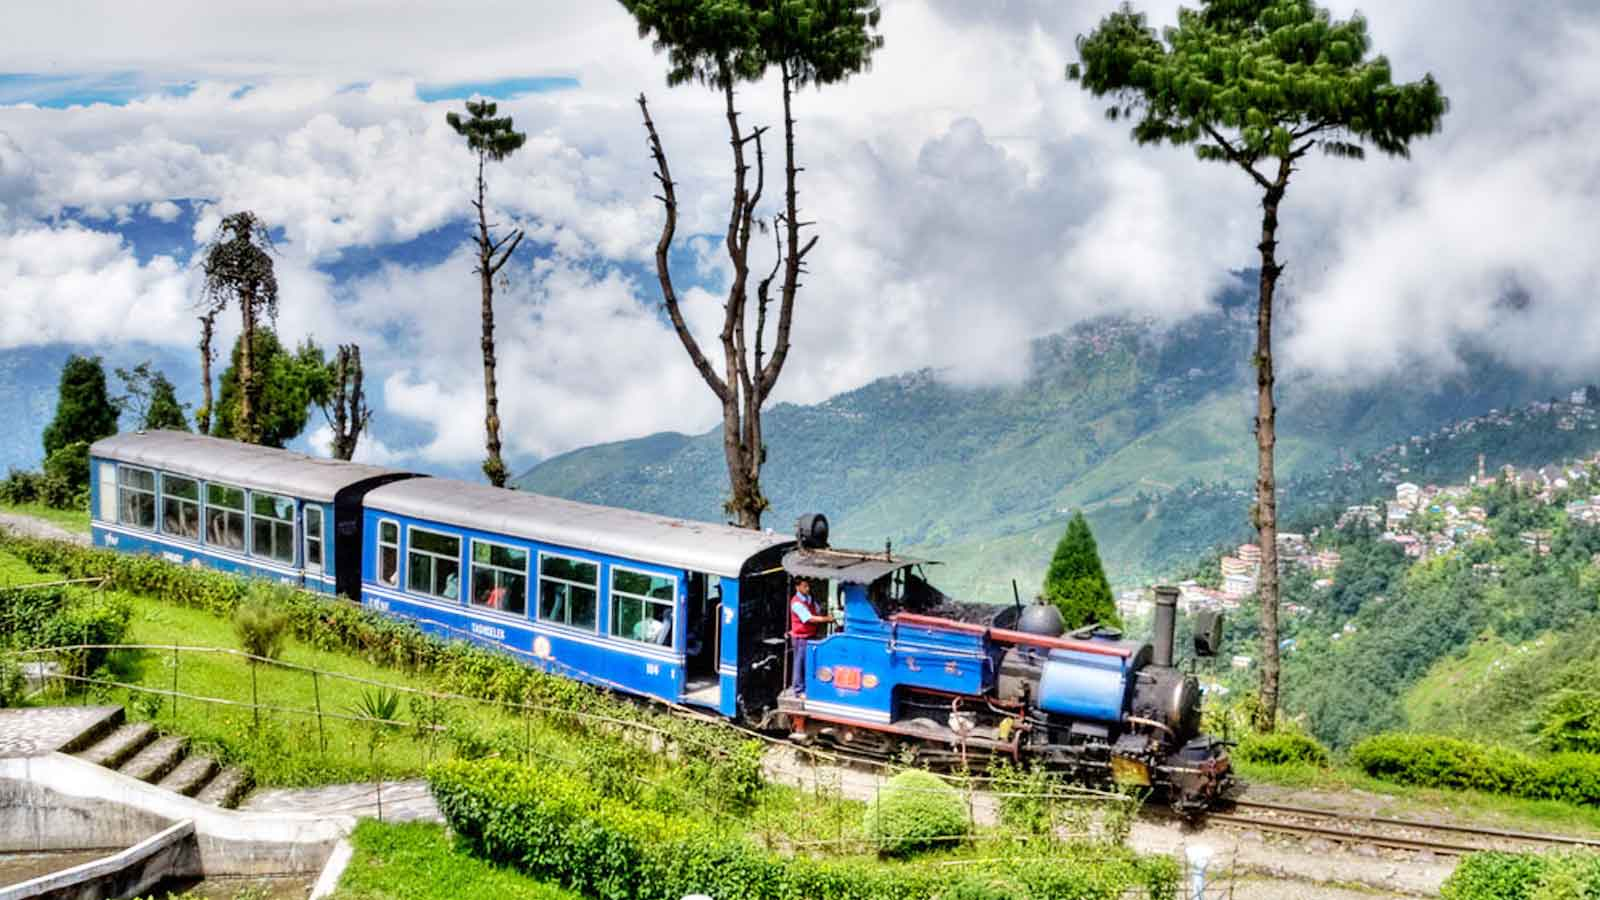 The fascinating view of Darjeeling